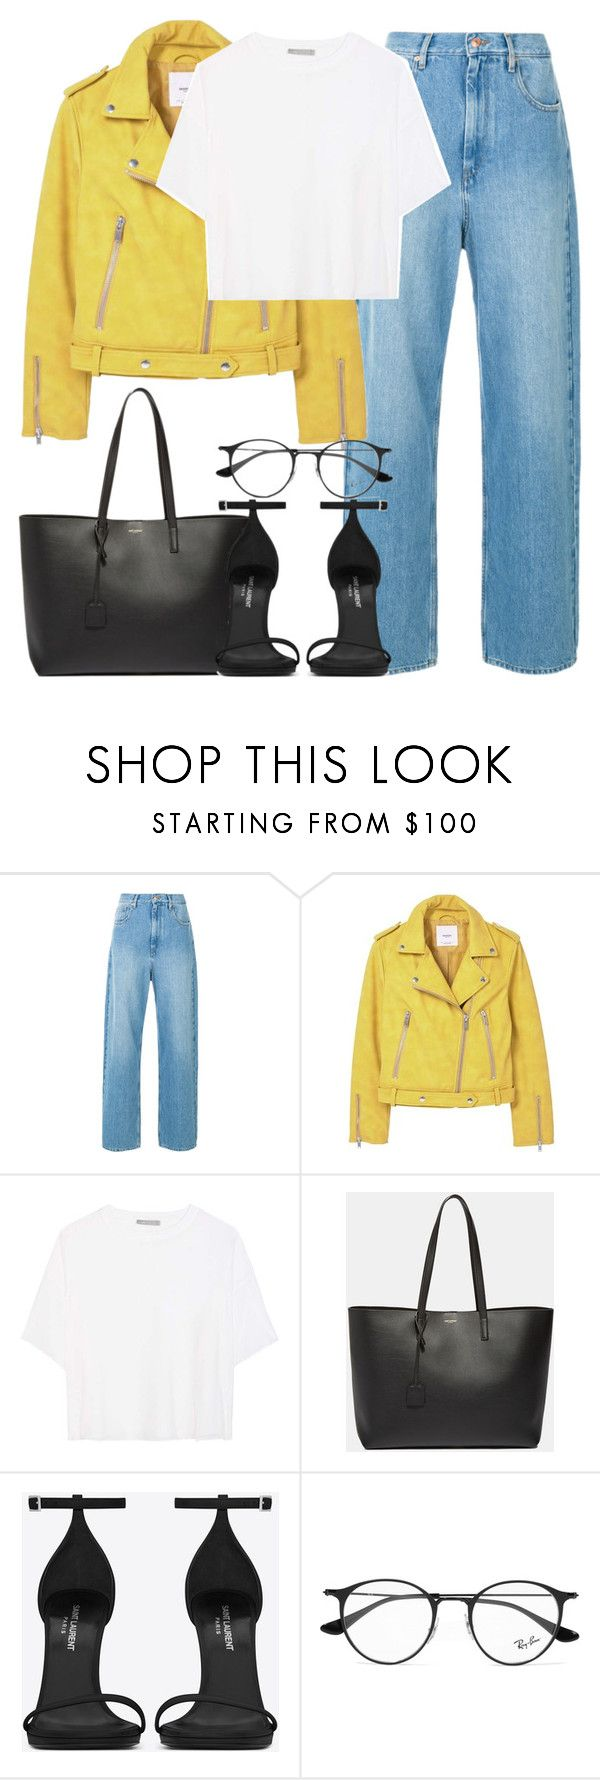 """Untitled #3086"" by elenaday on Polyvore featuring MANGO, Vince, Yves Saint Laurent and Ray-Ban"